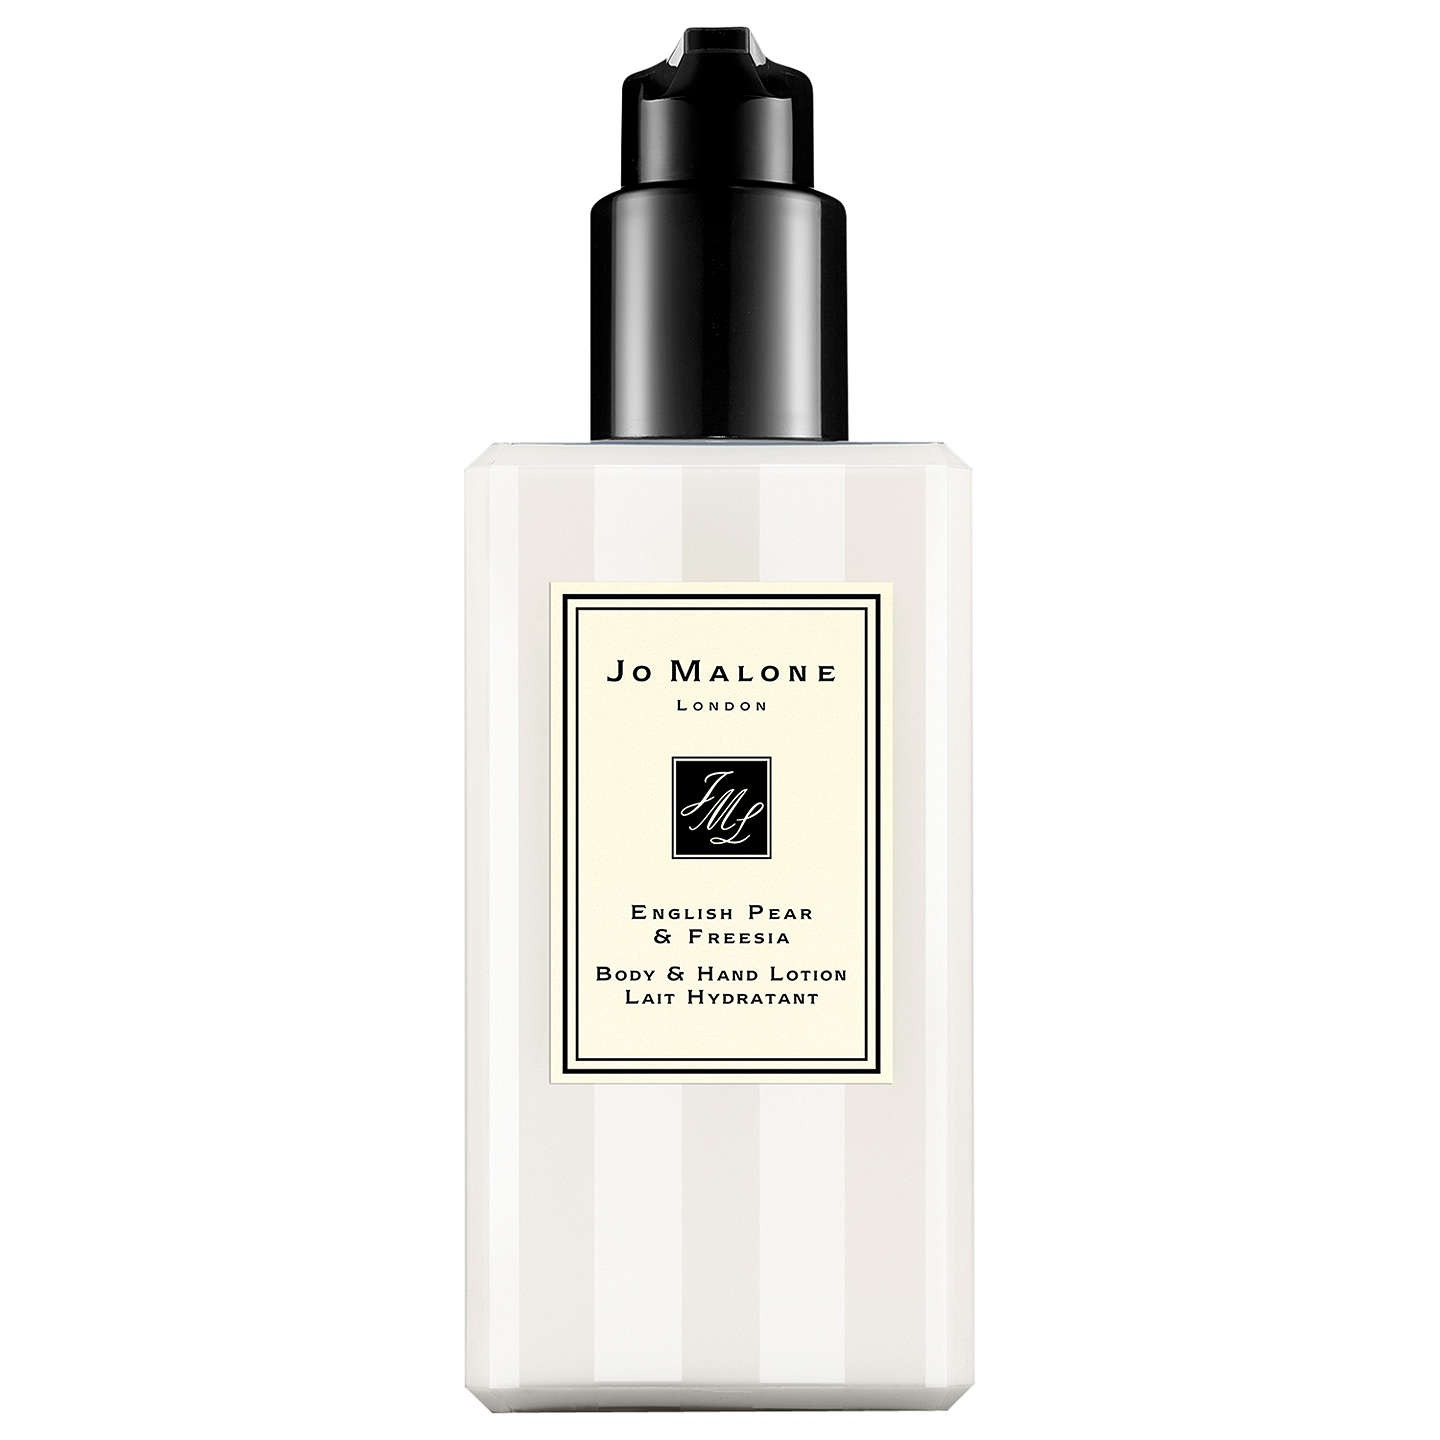 Jo Malone English Pear & Freesia Body & Hand Lotion